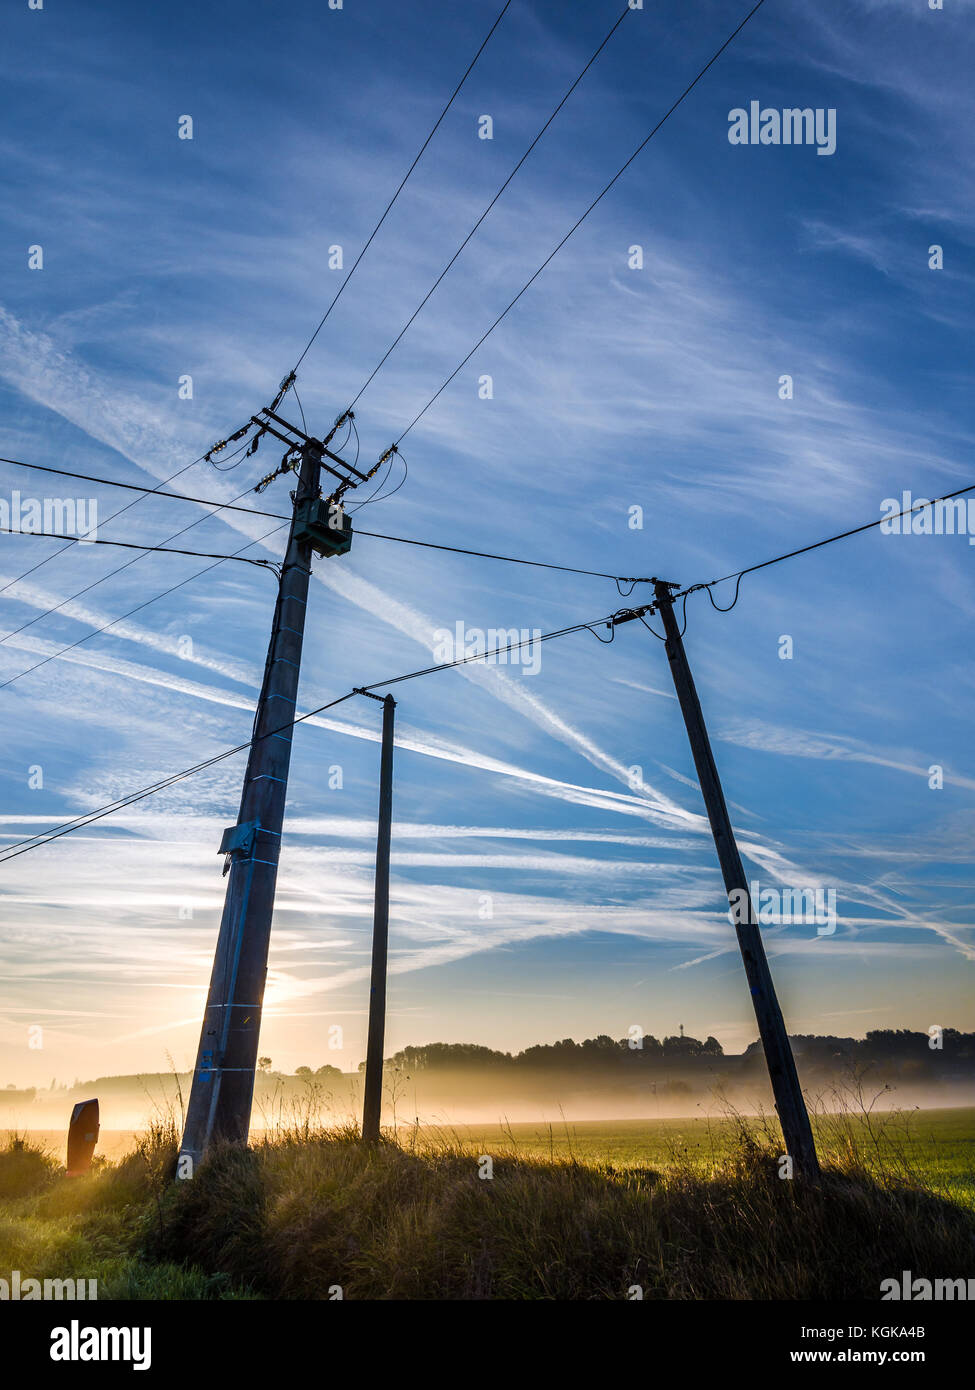 Electricity power lines and aircraft contrails - France. - Stock Image